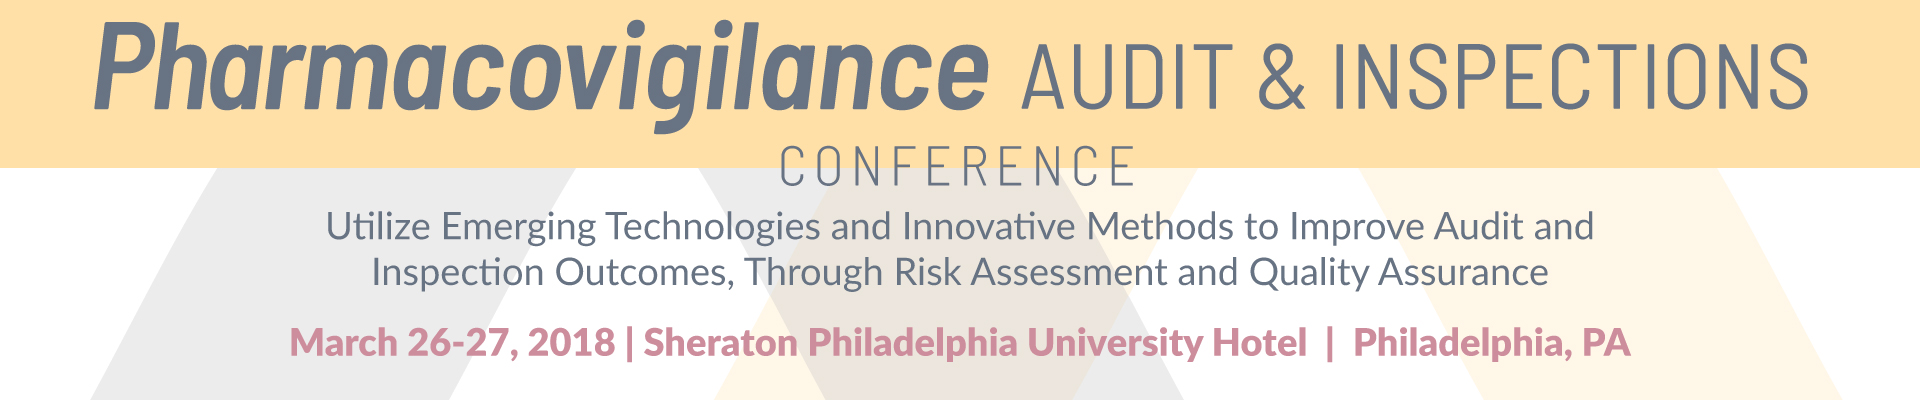 Pharmacovigilance Audit and Inspections Conference